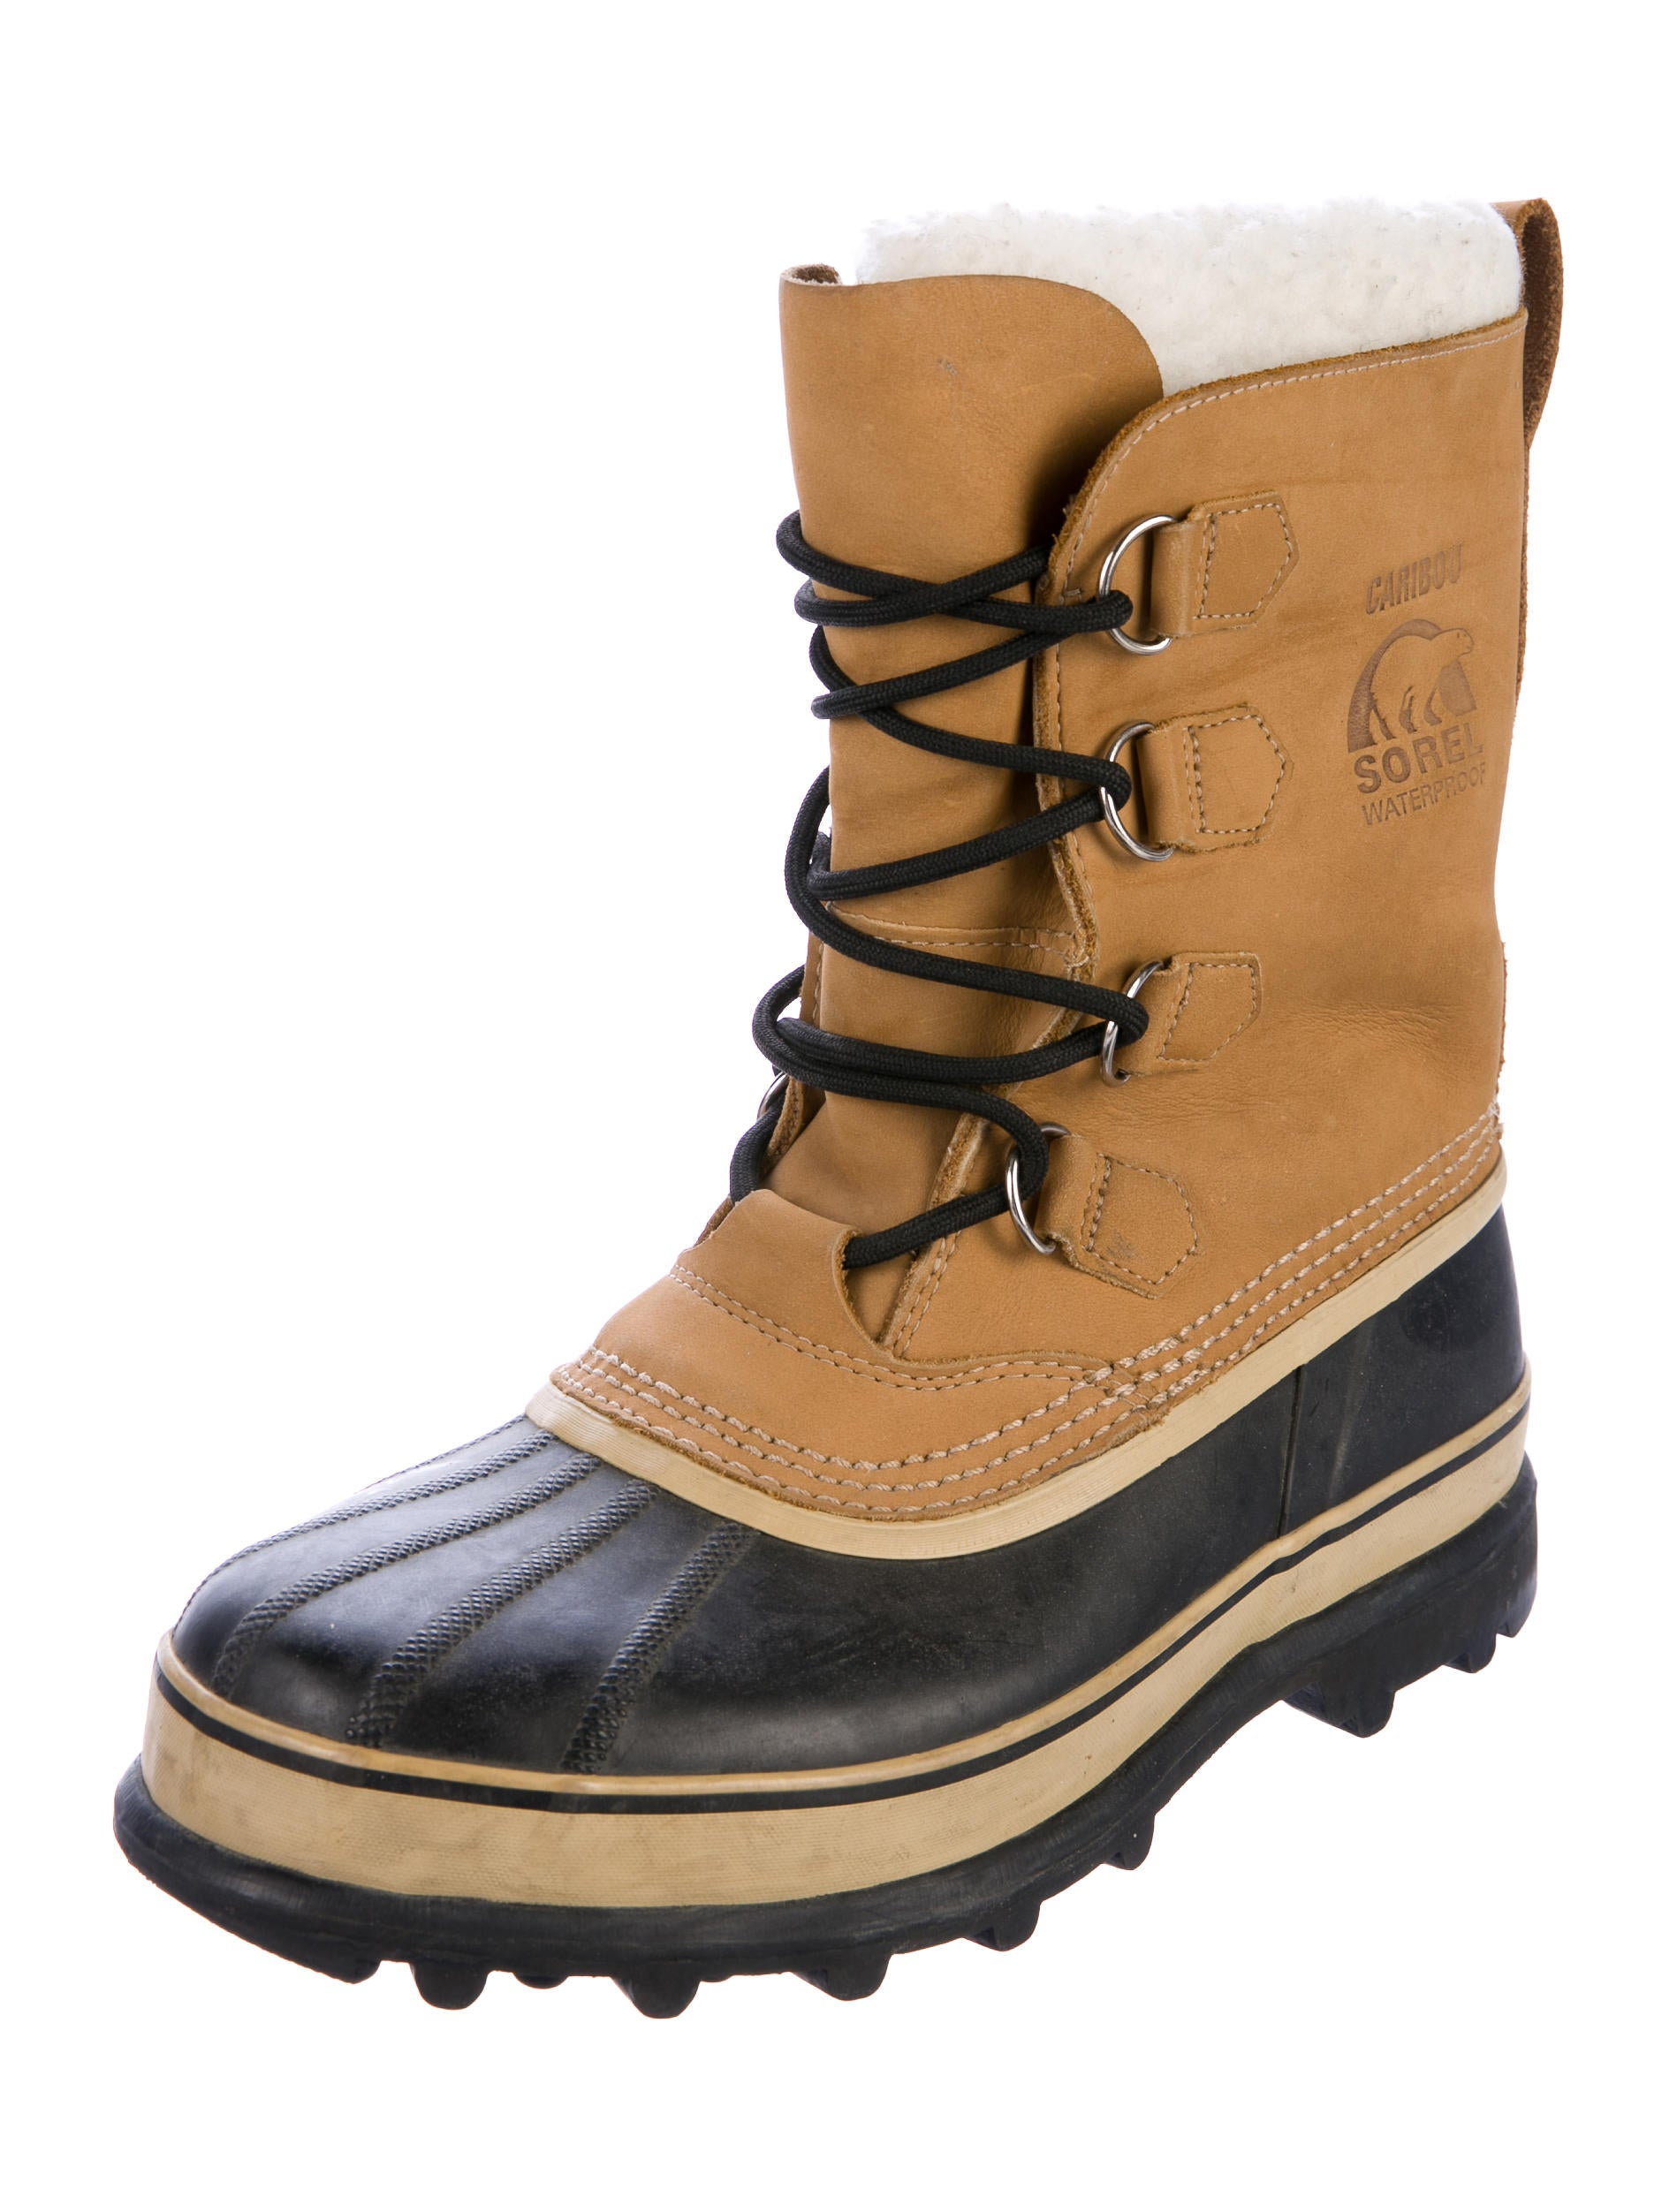 sorel carbiou waterproof boots shoes wsorl20351 the